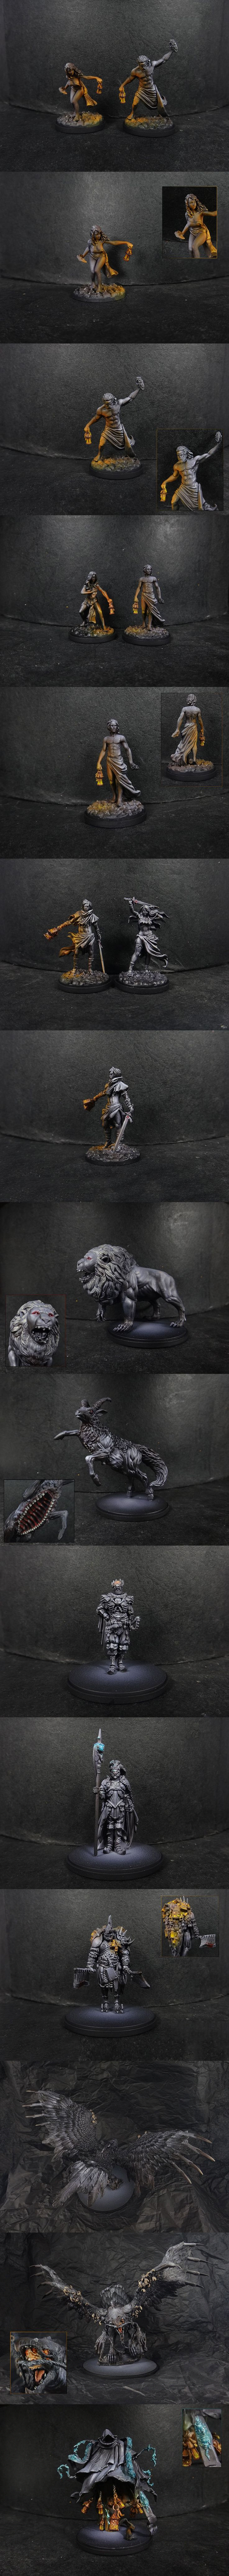 45 best Kingdom Death Monster images on Pinterest | Miniatures ...